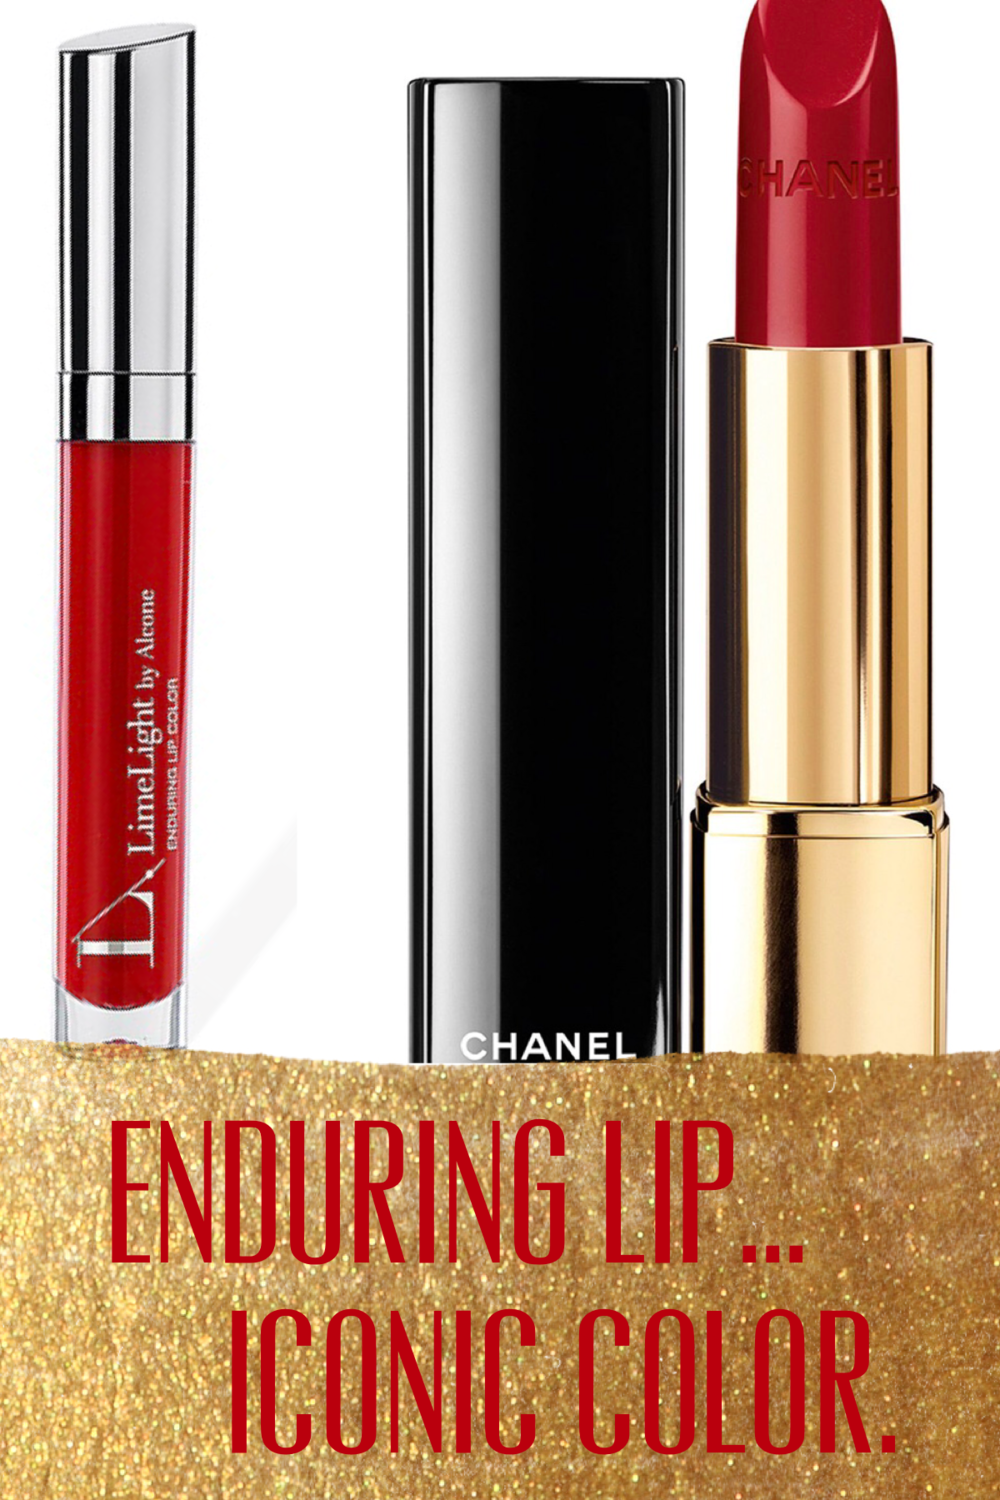 Limelight by Alcone Enduring Lip in Cherry Pie ($20) & Chanel in Pirate ($37)